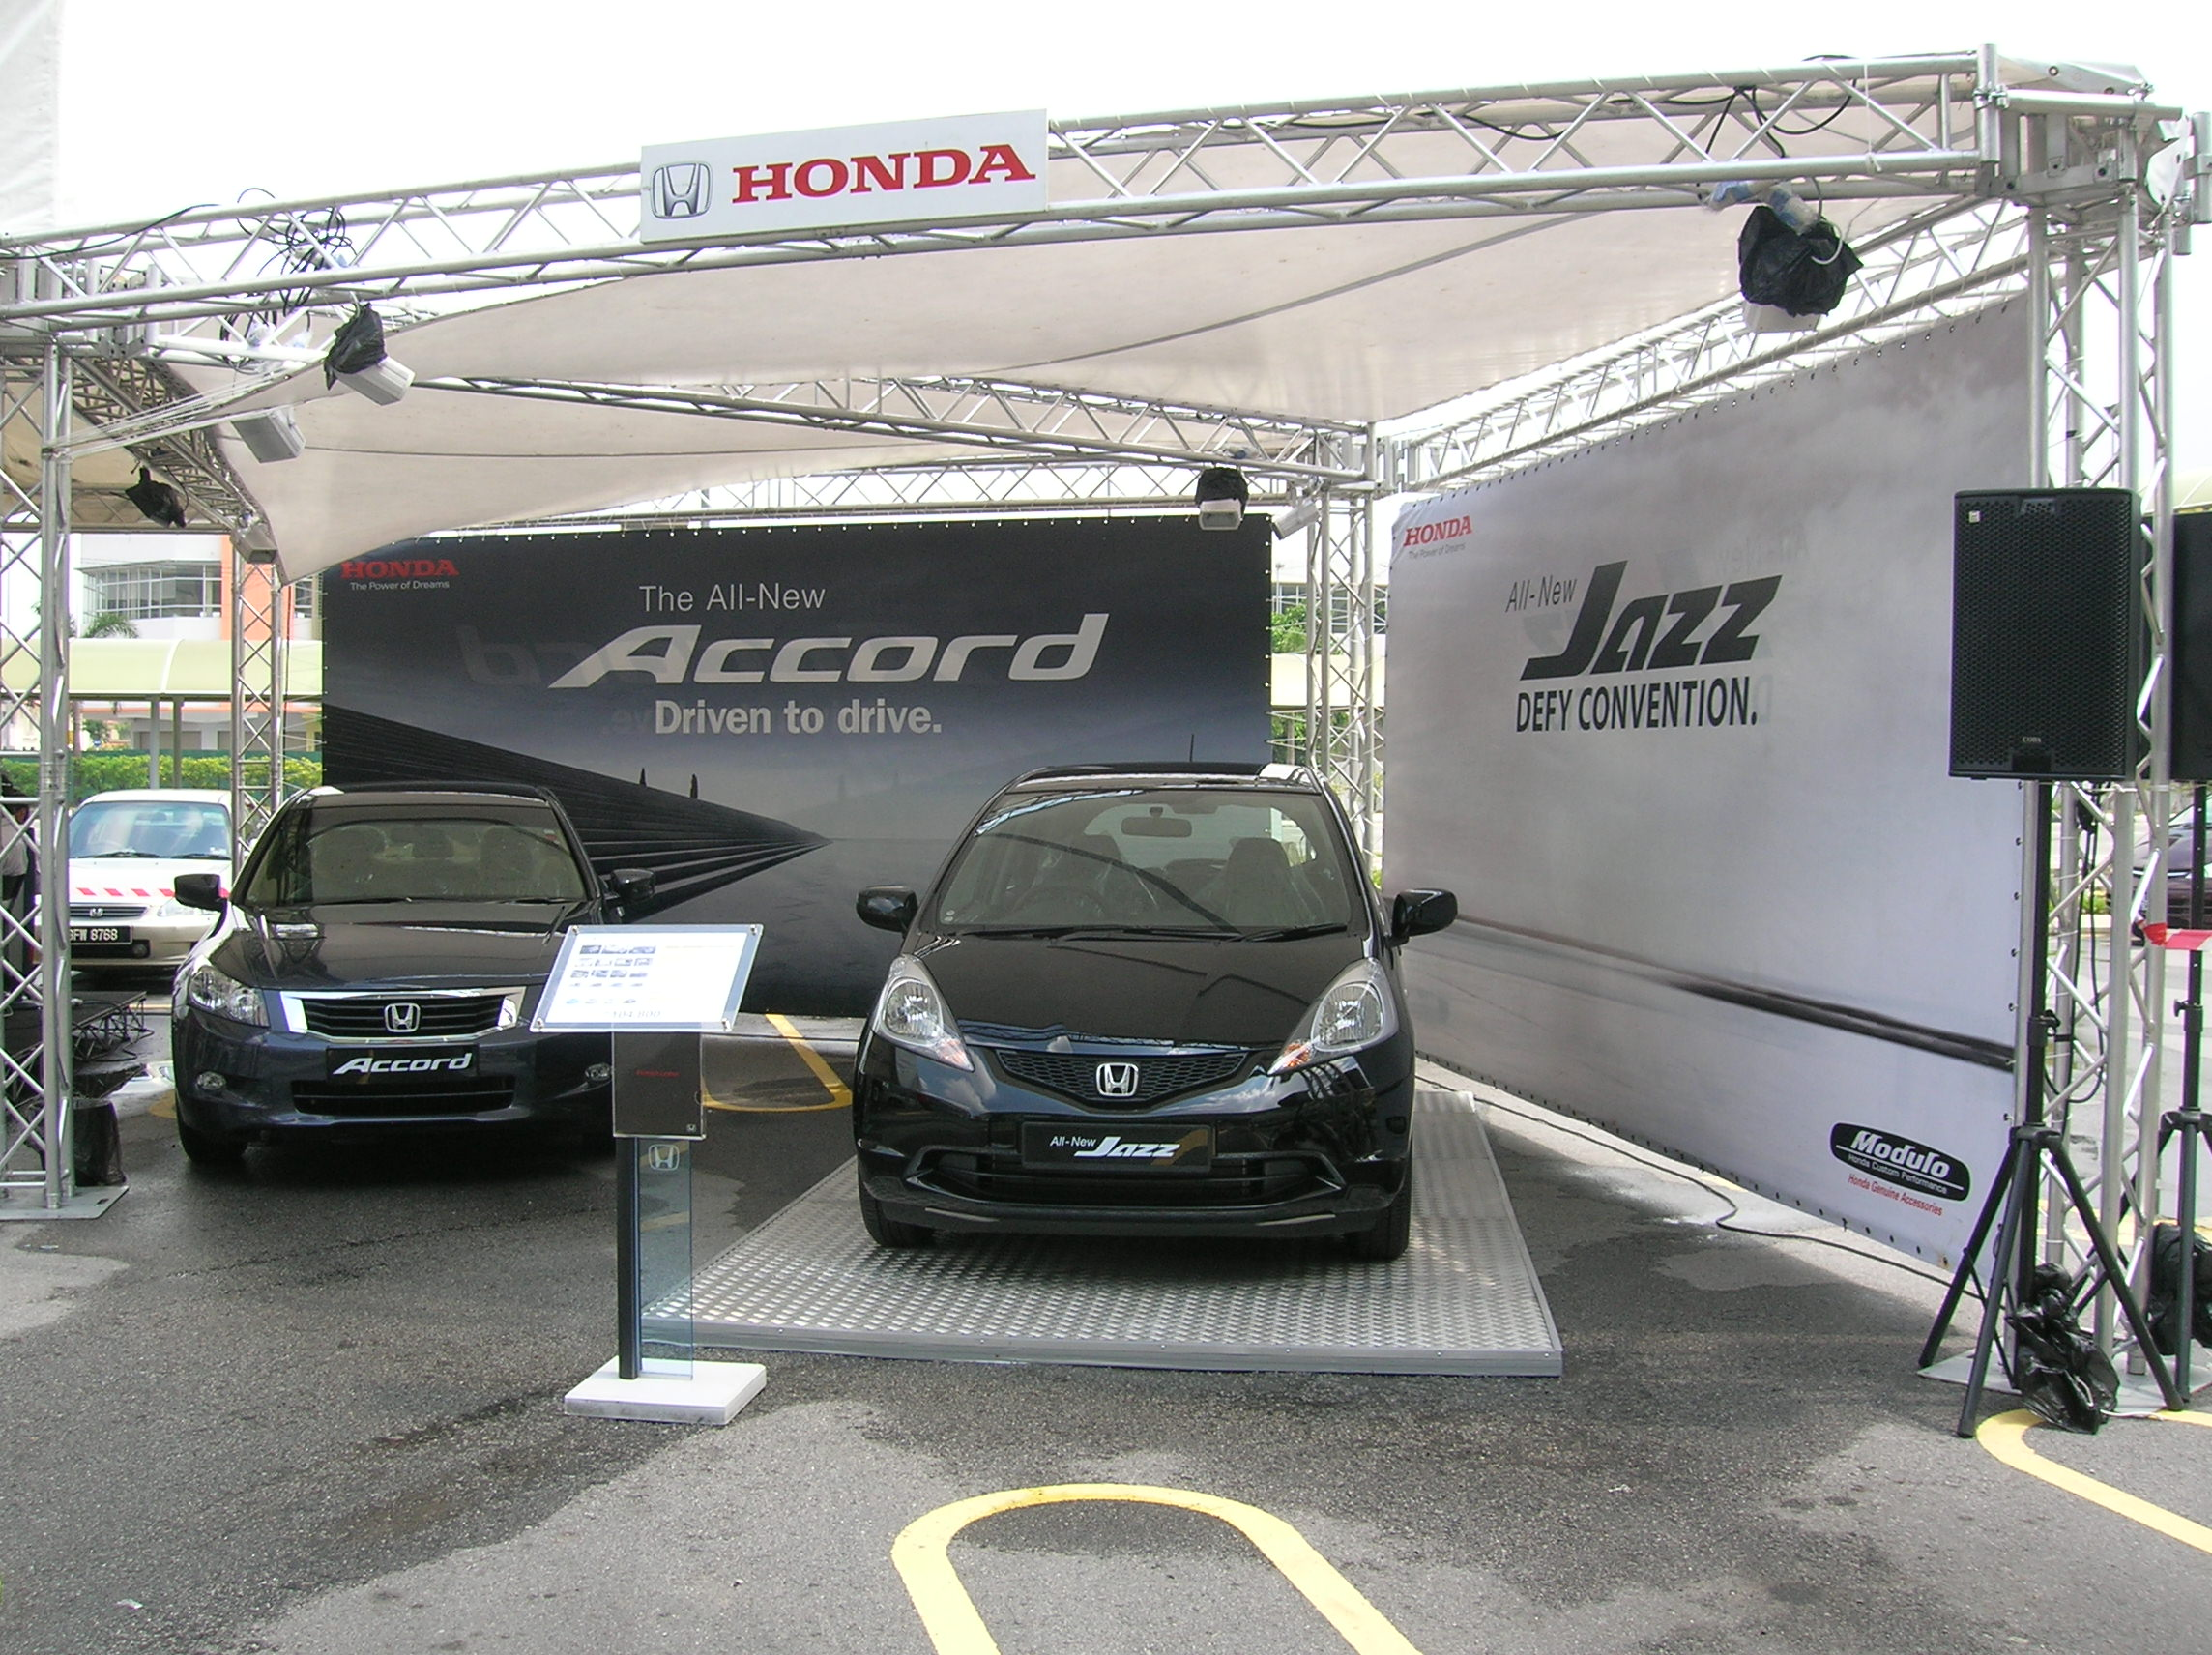 Accord and Jazz on display